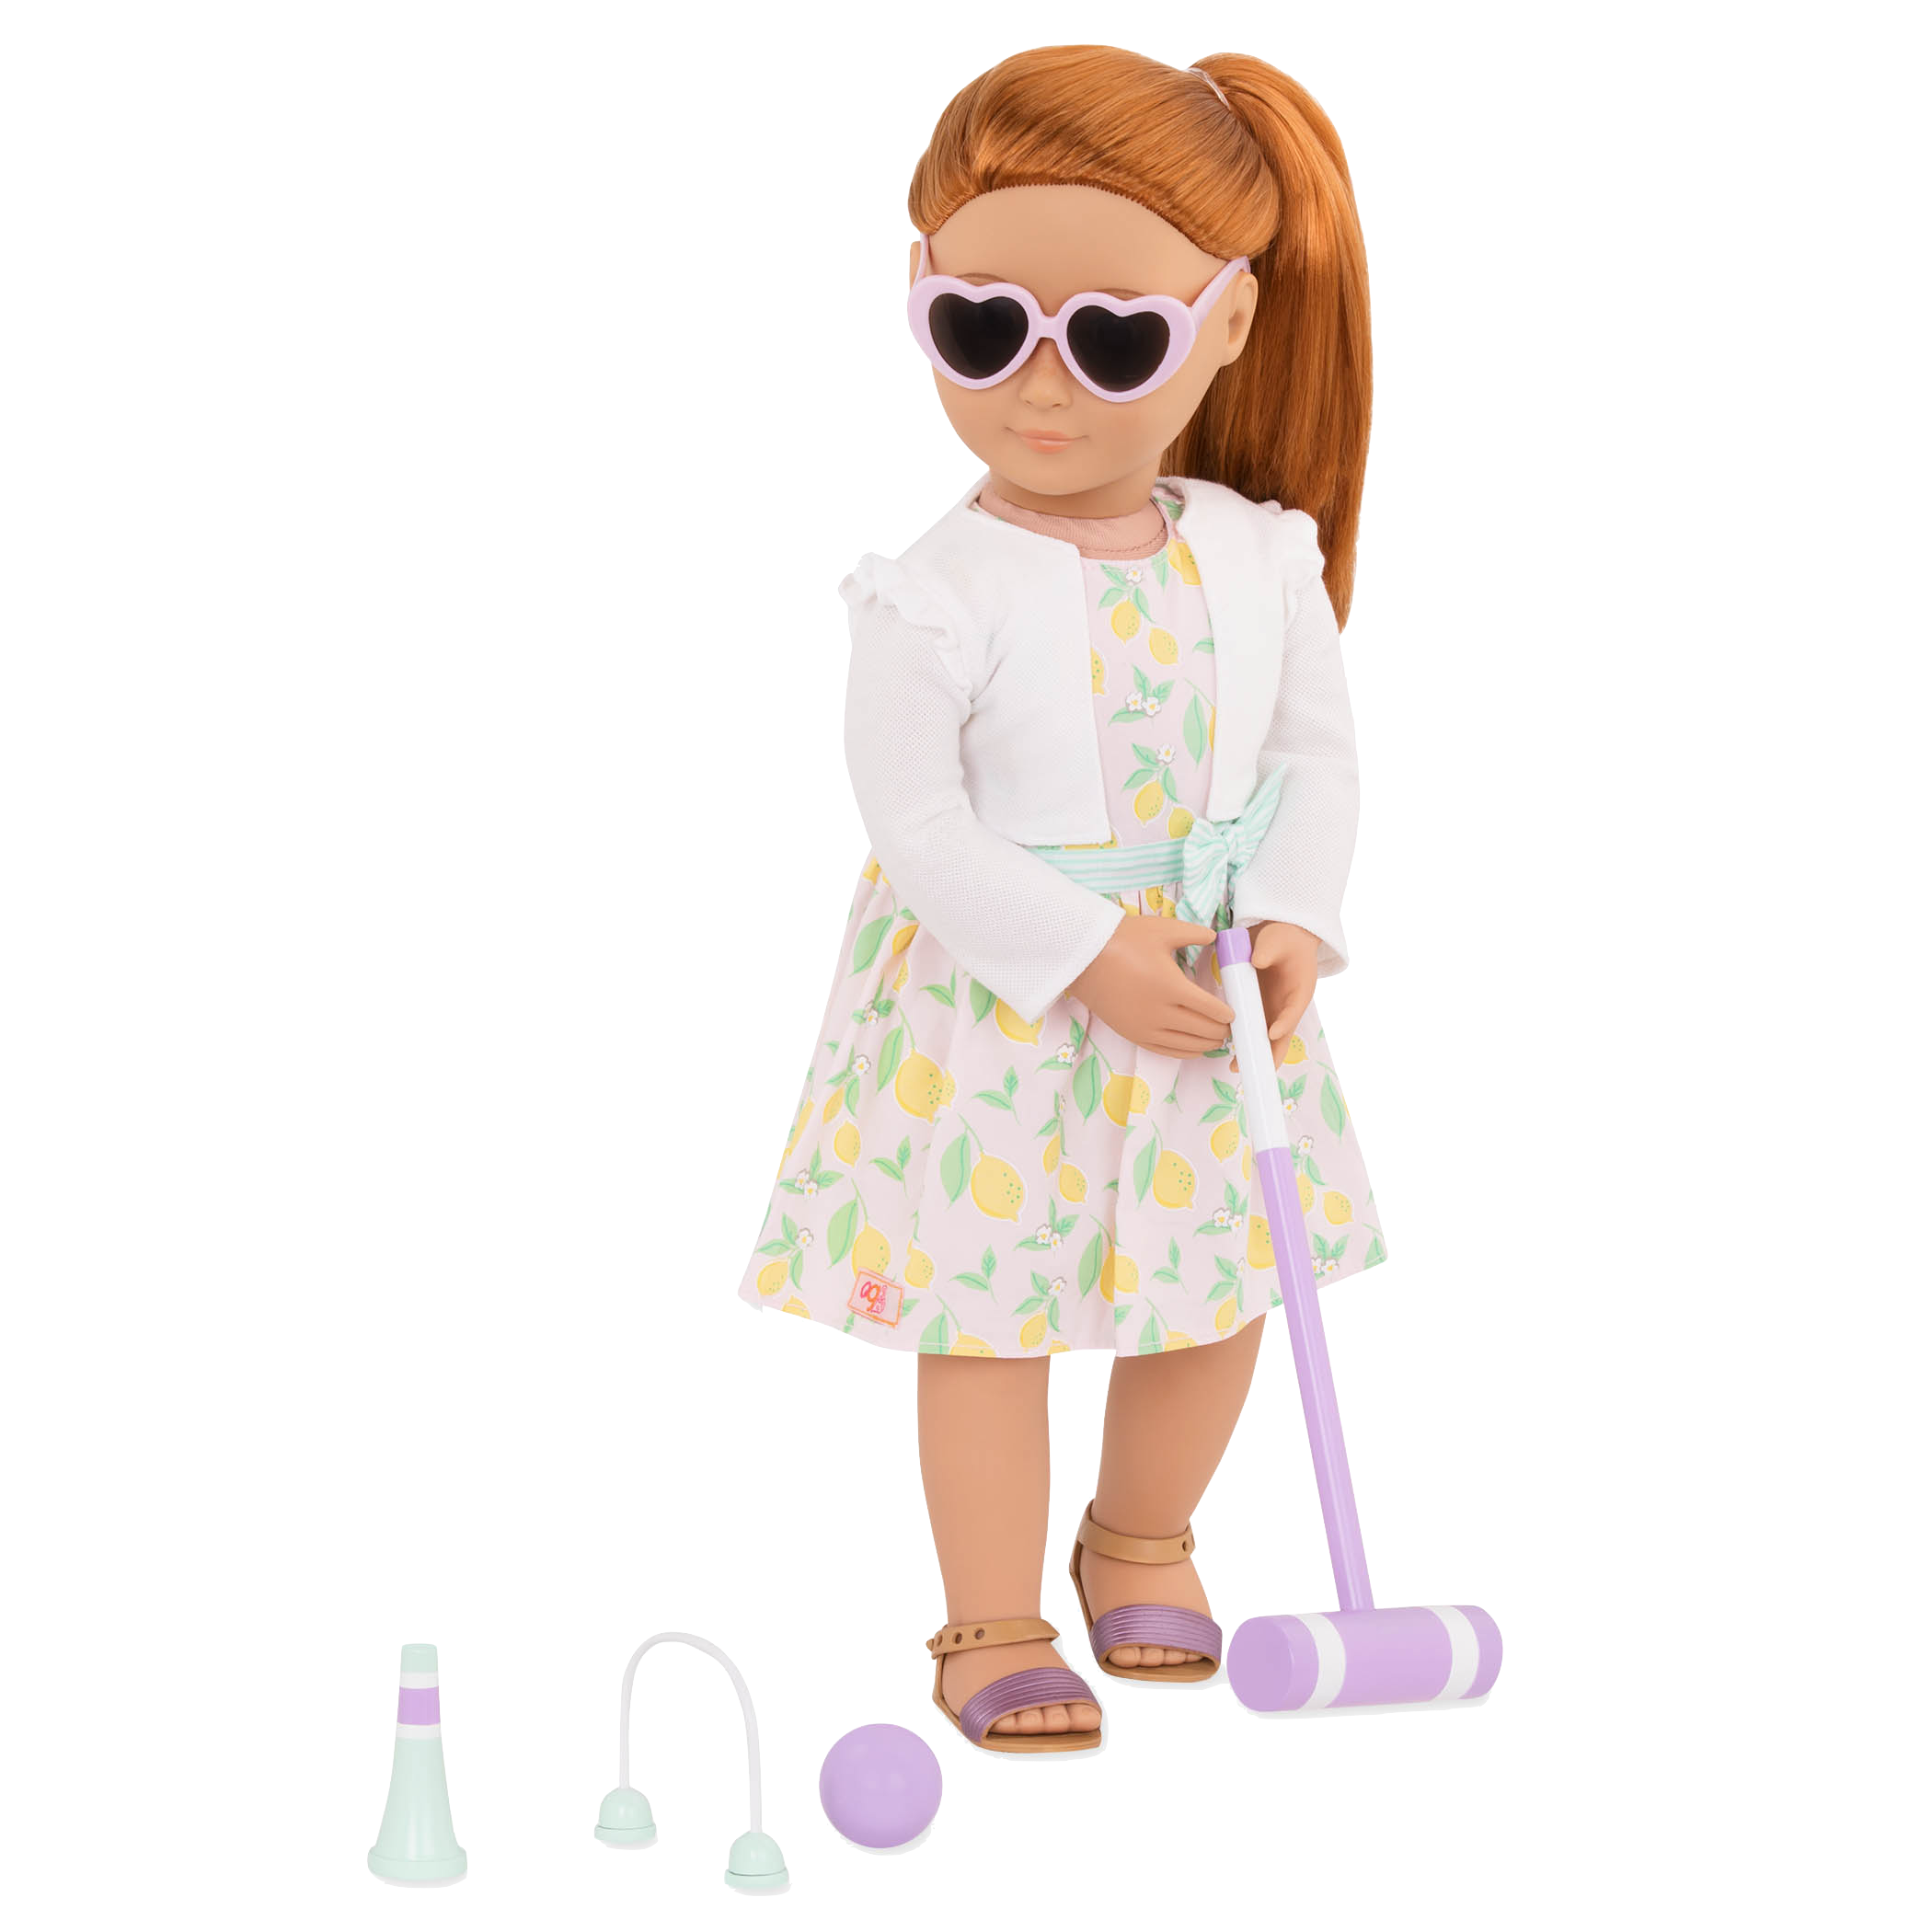 Croquet Play outfit Noa playing croquet